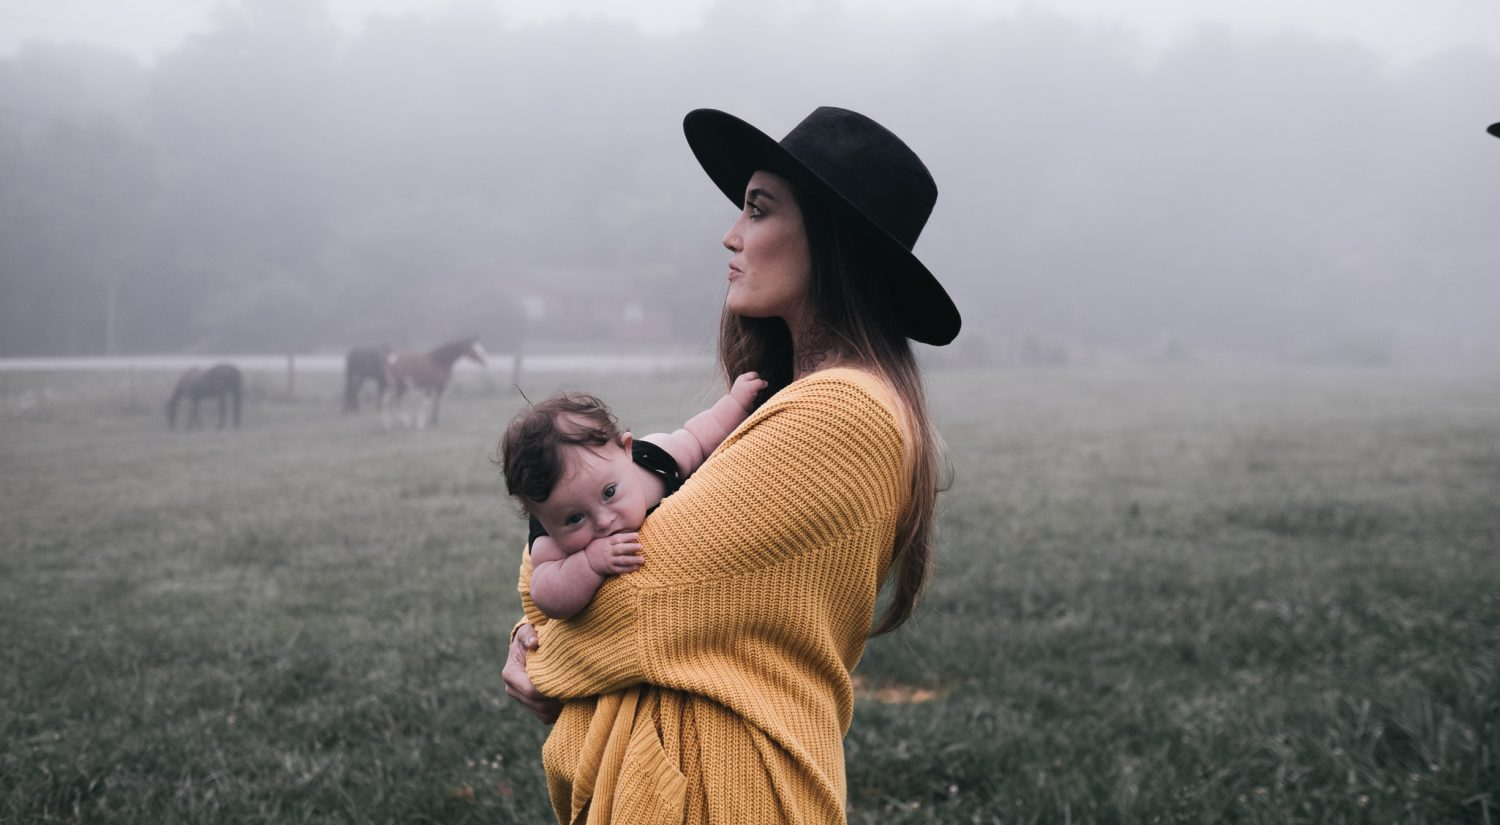 Mum holding baby with horses in background